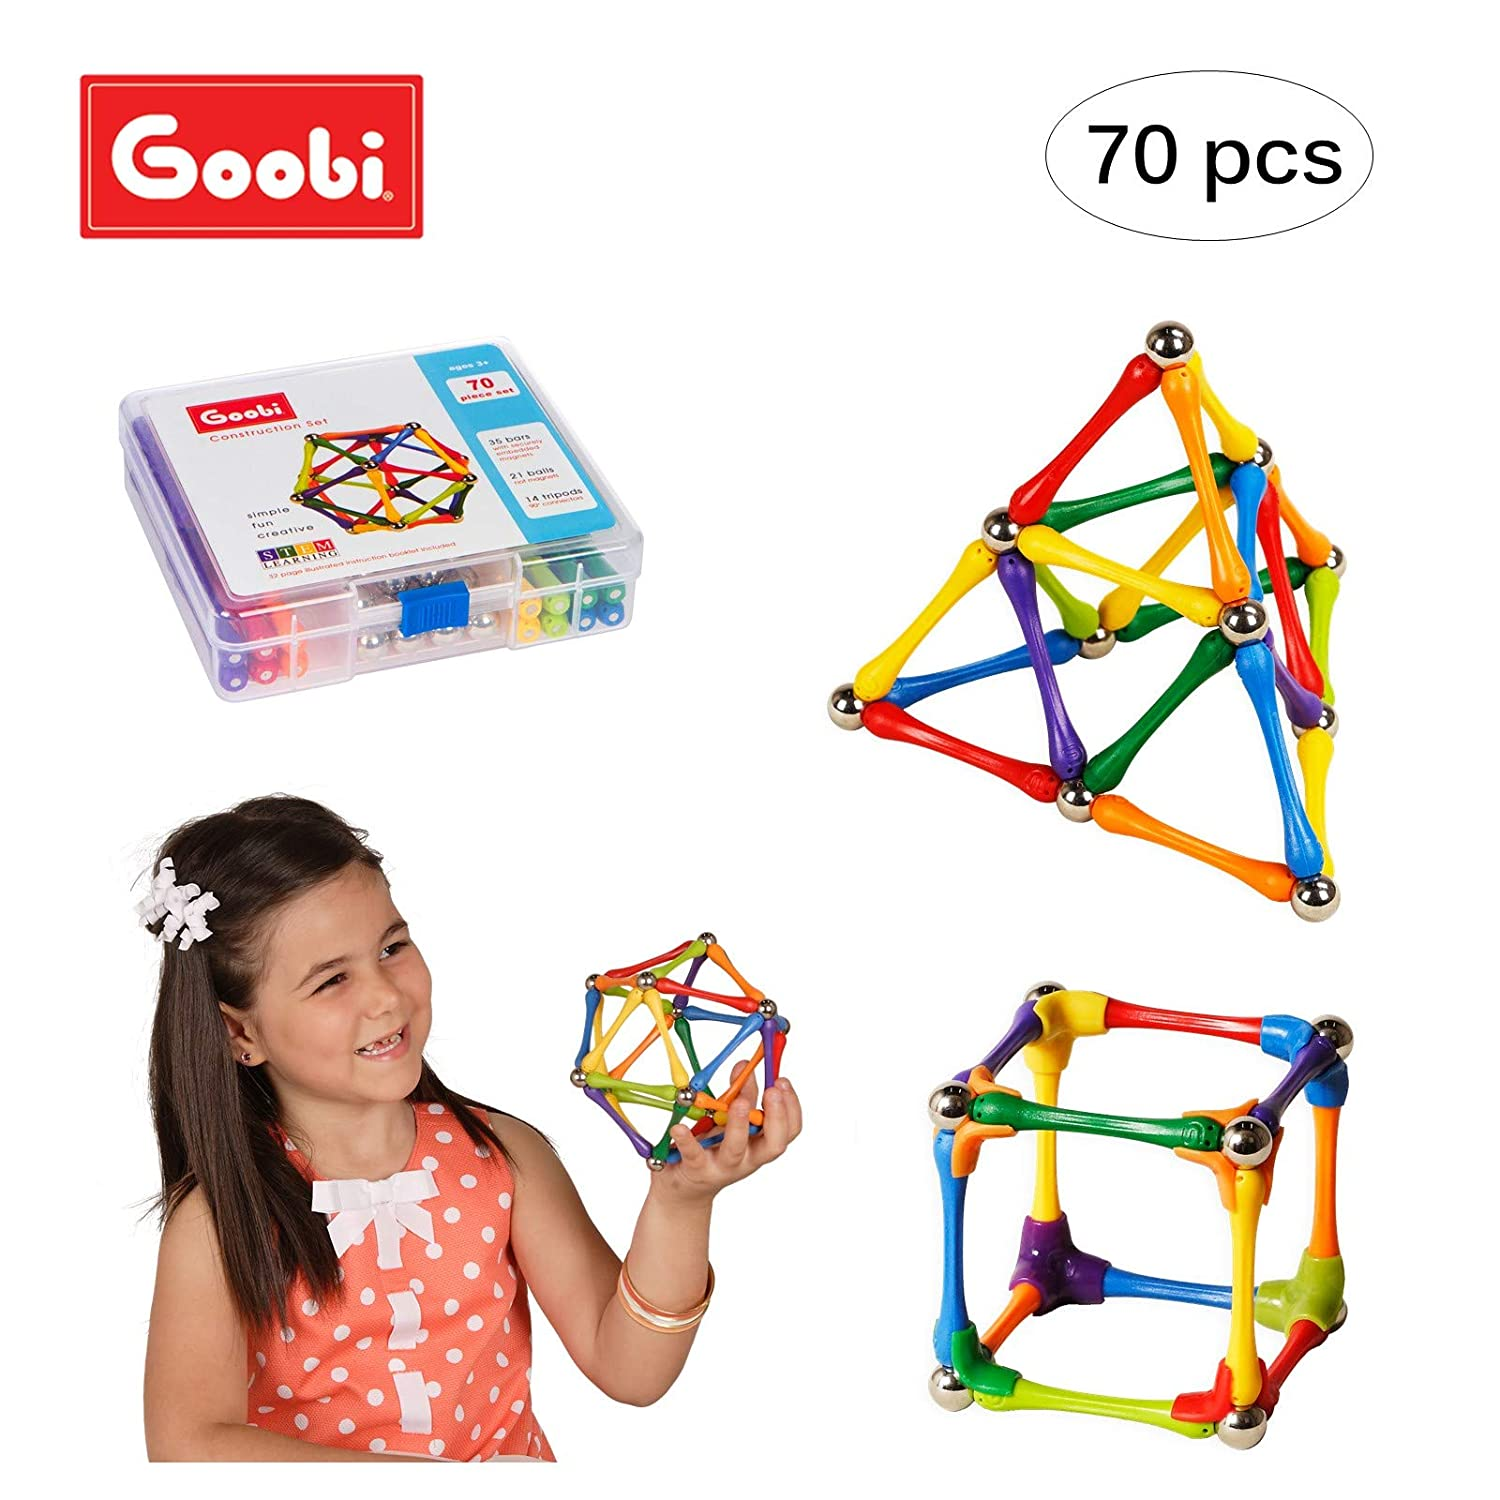 Goobi 70 Piece Construction Set with Instruction Booklet | STEM Learning | Assorted Rainbow colors